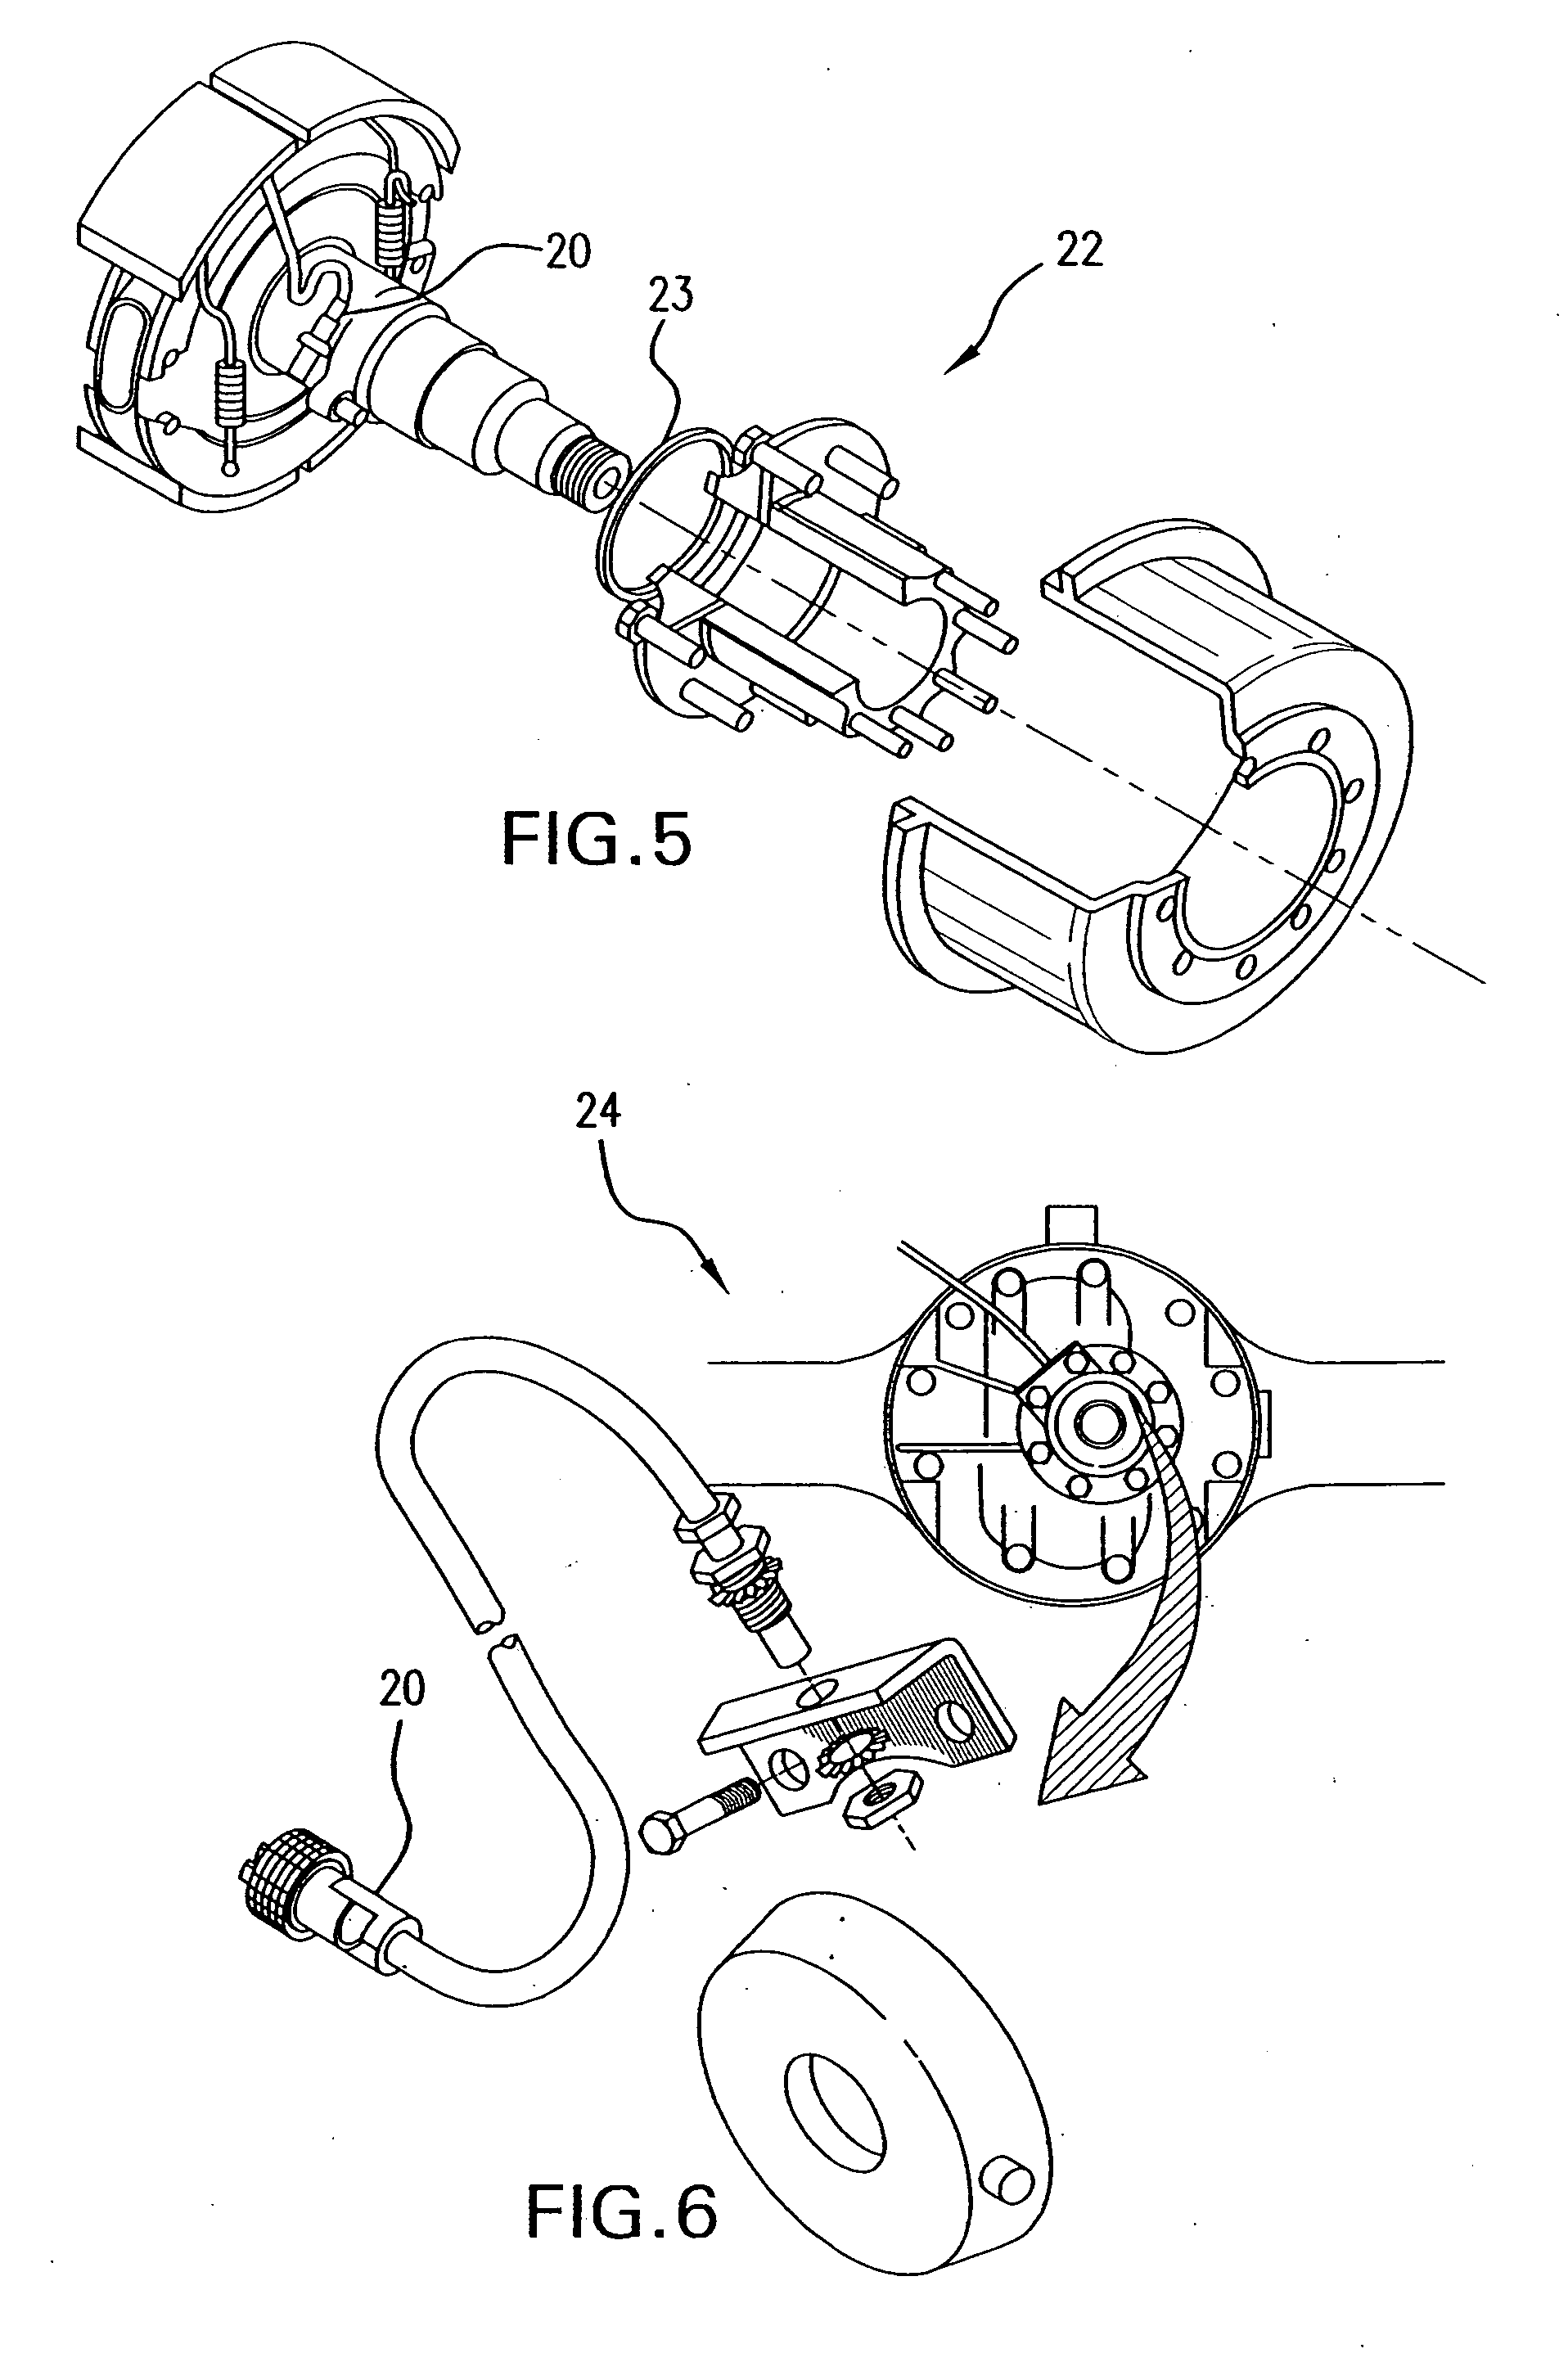 US20040113778 further Alert Automotive Wiring Diagrams furthermore Water Flow Sensor Circuit Diagram together with Bc548 Heat Sensor Diagram Circuit furthermore 0449 028. on motion sensing alarm